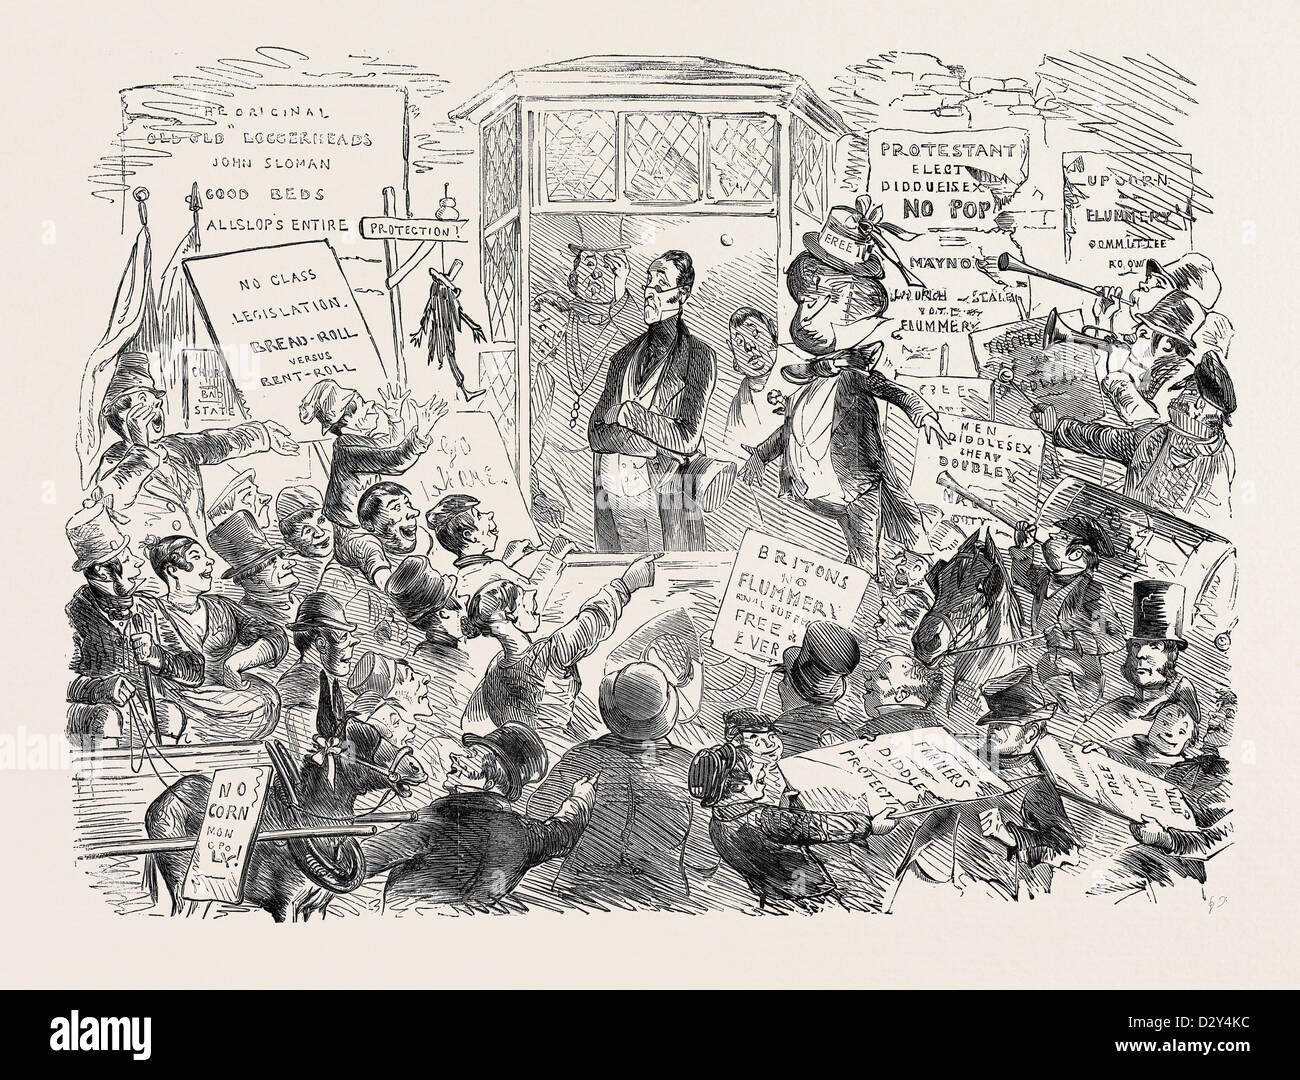 THE REJECTED CANDIDATE, DRAWN BY PHIZ, 1852 - Stock Image